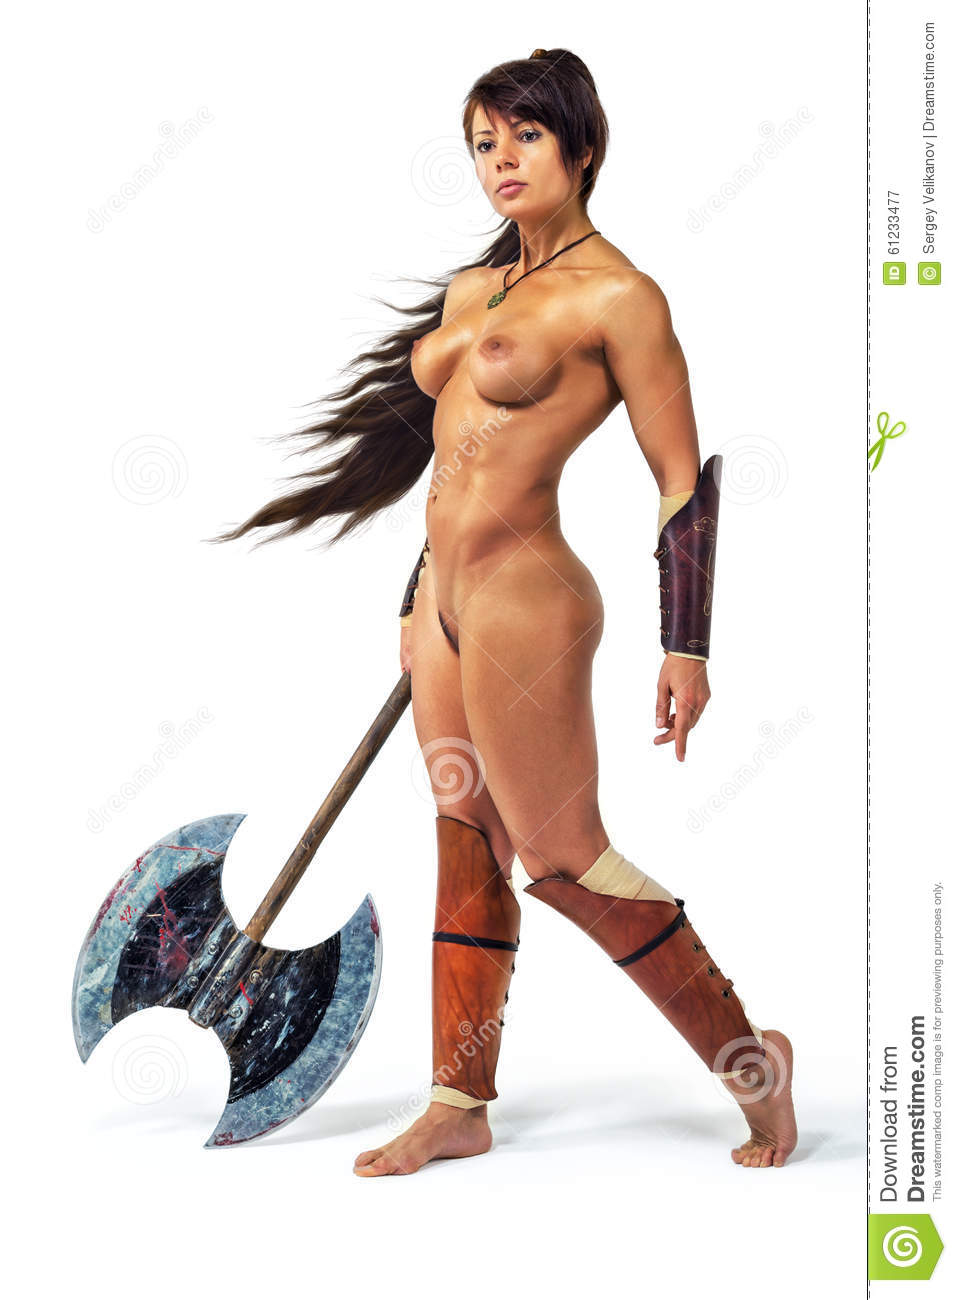 Naked women warriors erotic image